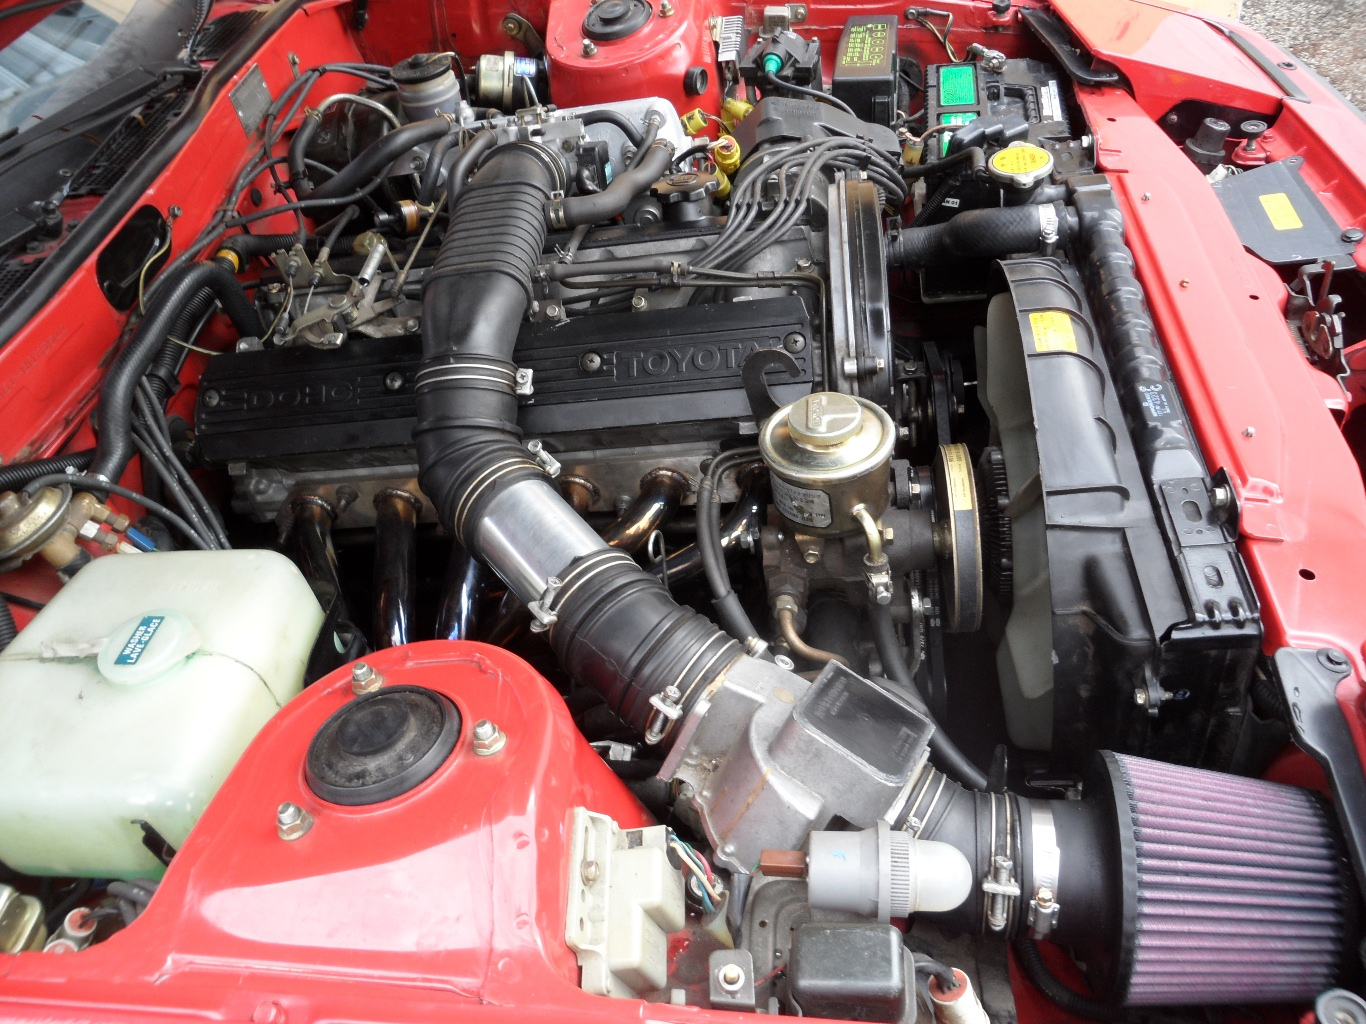 Engine diagram in truck get free image about wiring diagram - Engine Diagram In Truck Get Free Image About Wiring Diagram 1977 Toyota Celica Wiring Diagram Download